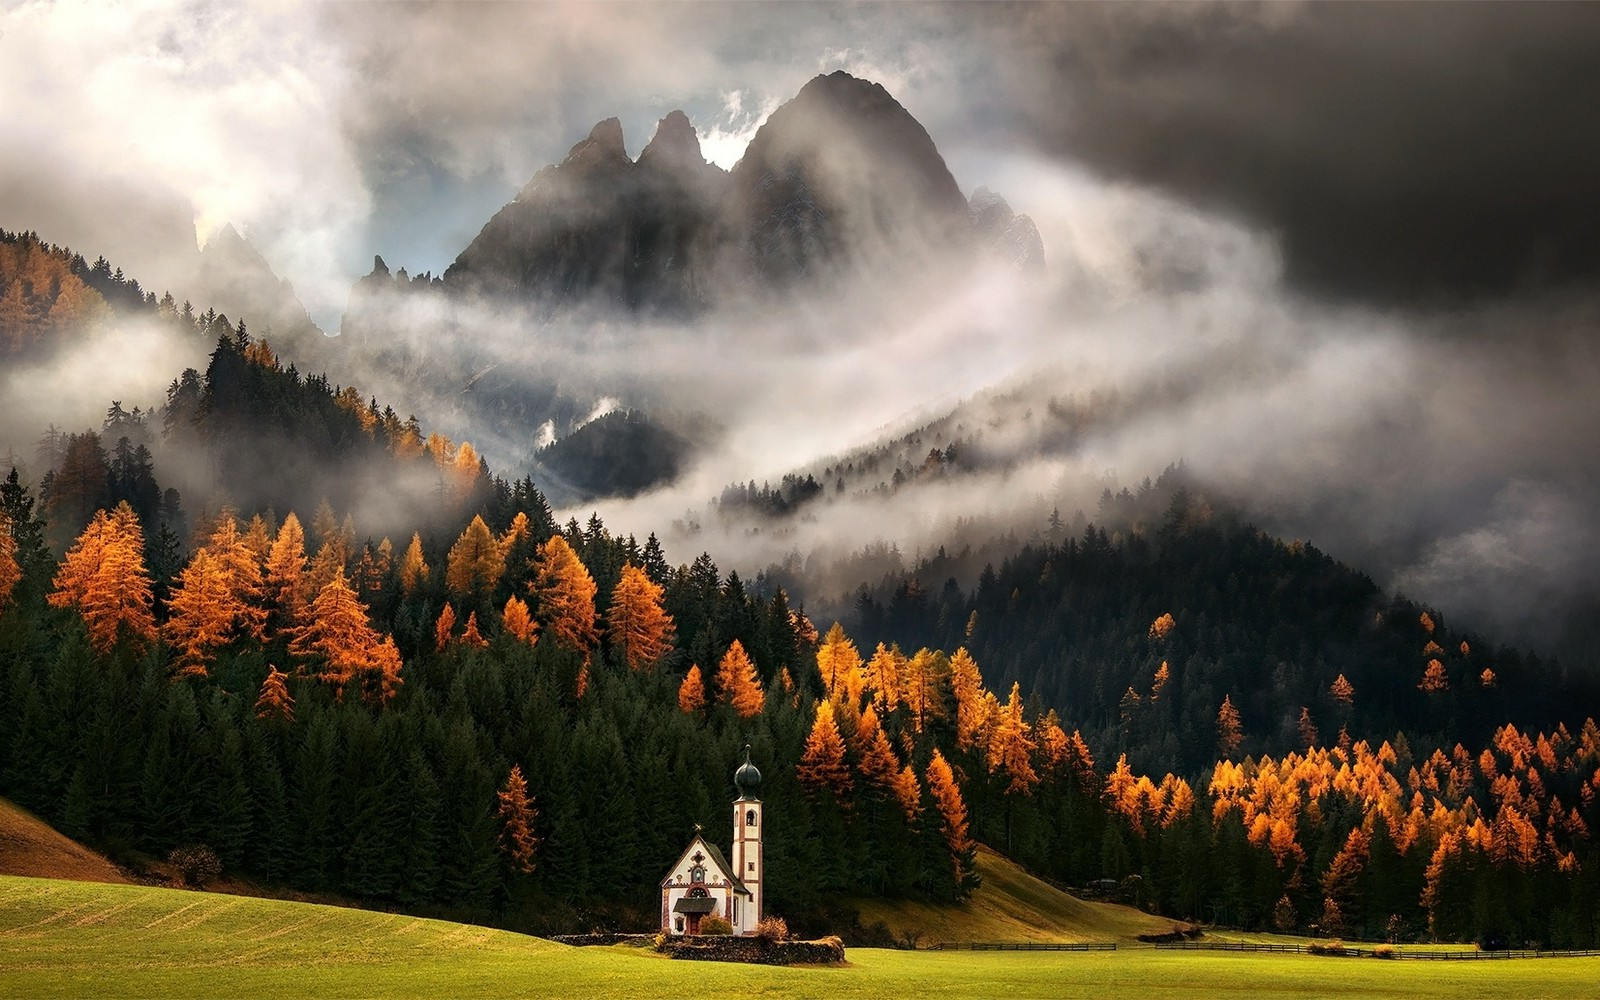 Fall In The Smoky Mountains Wallpaper Nature Mist Landscape Italy Alps Church Clouds